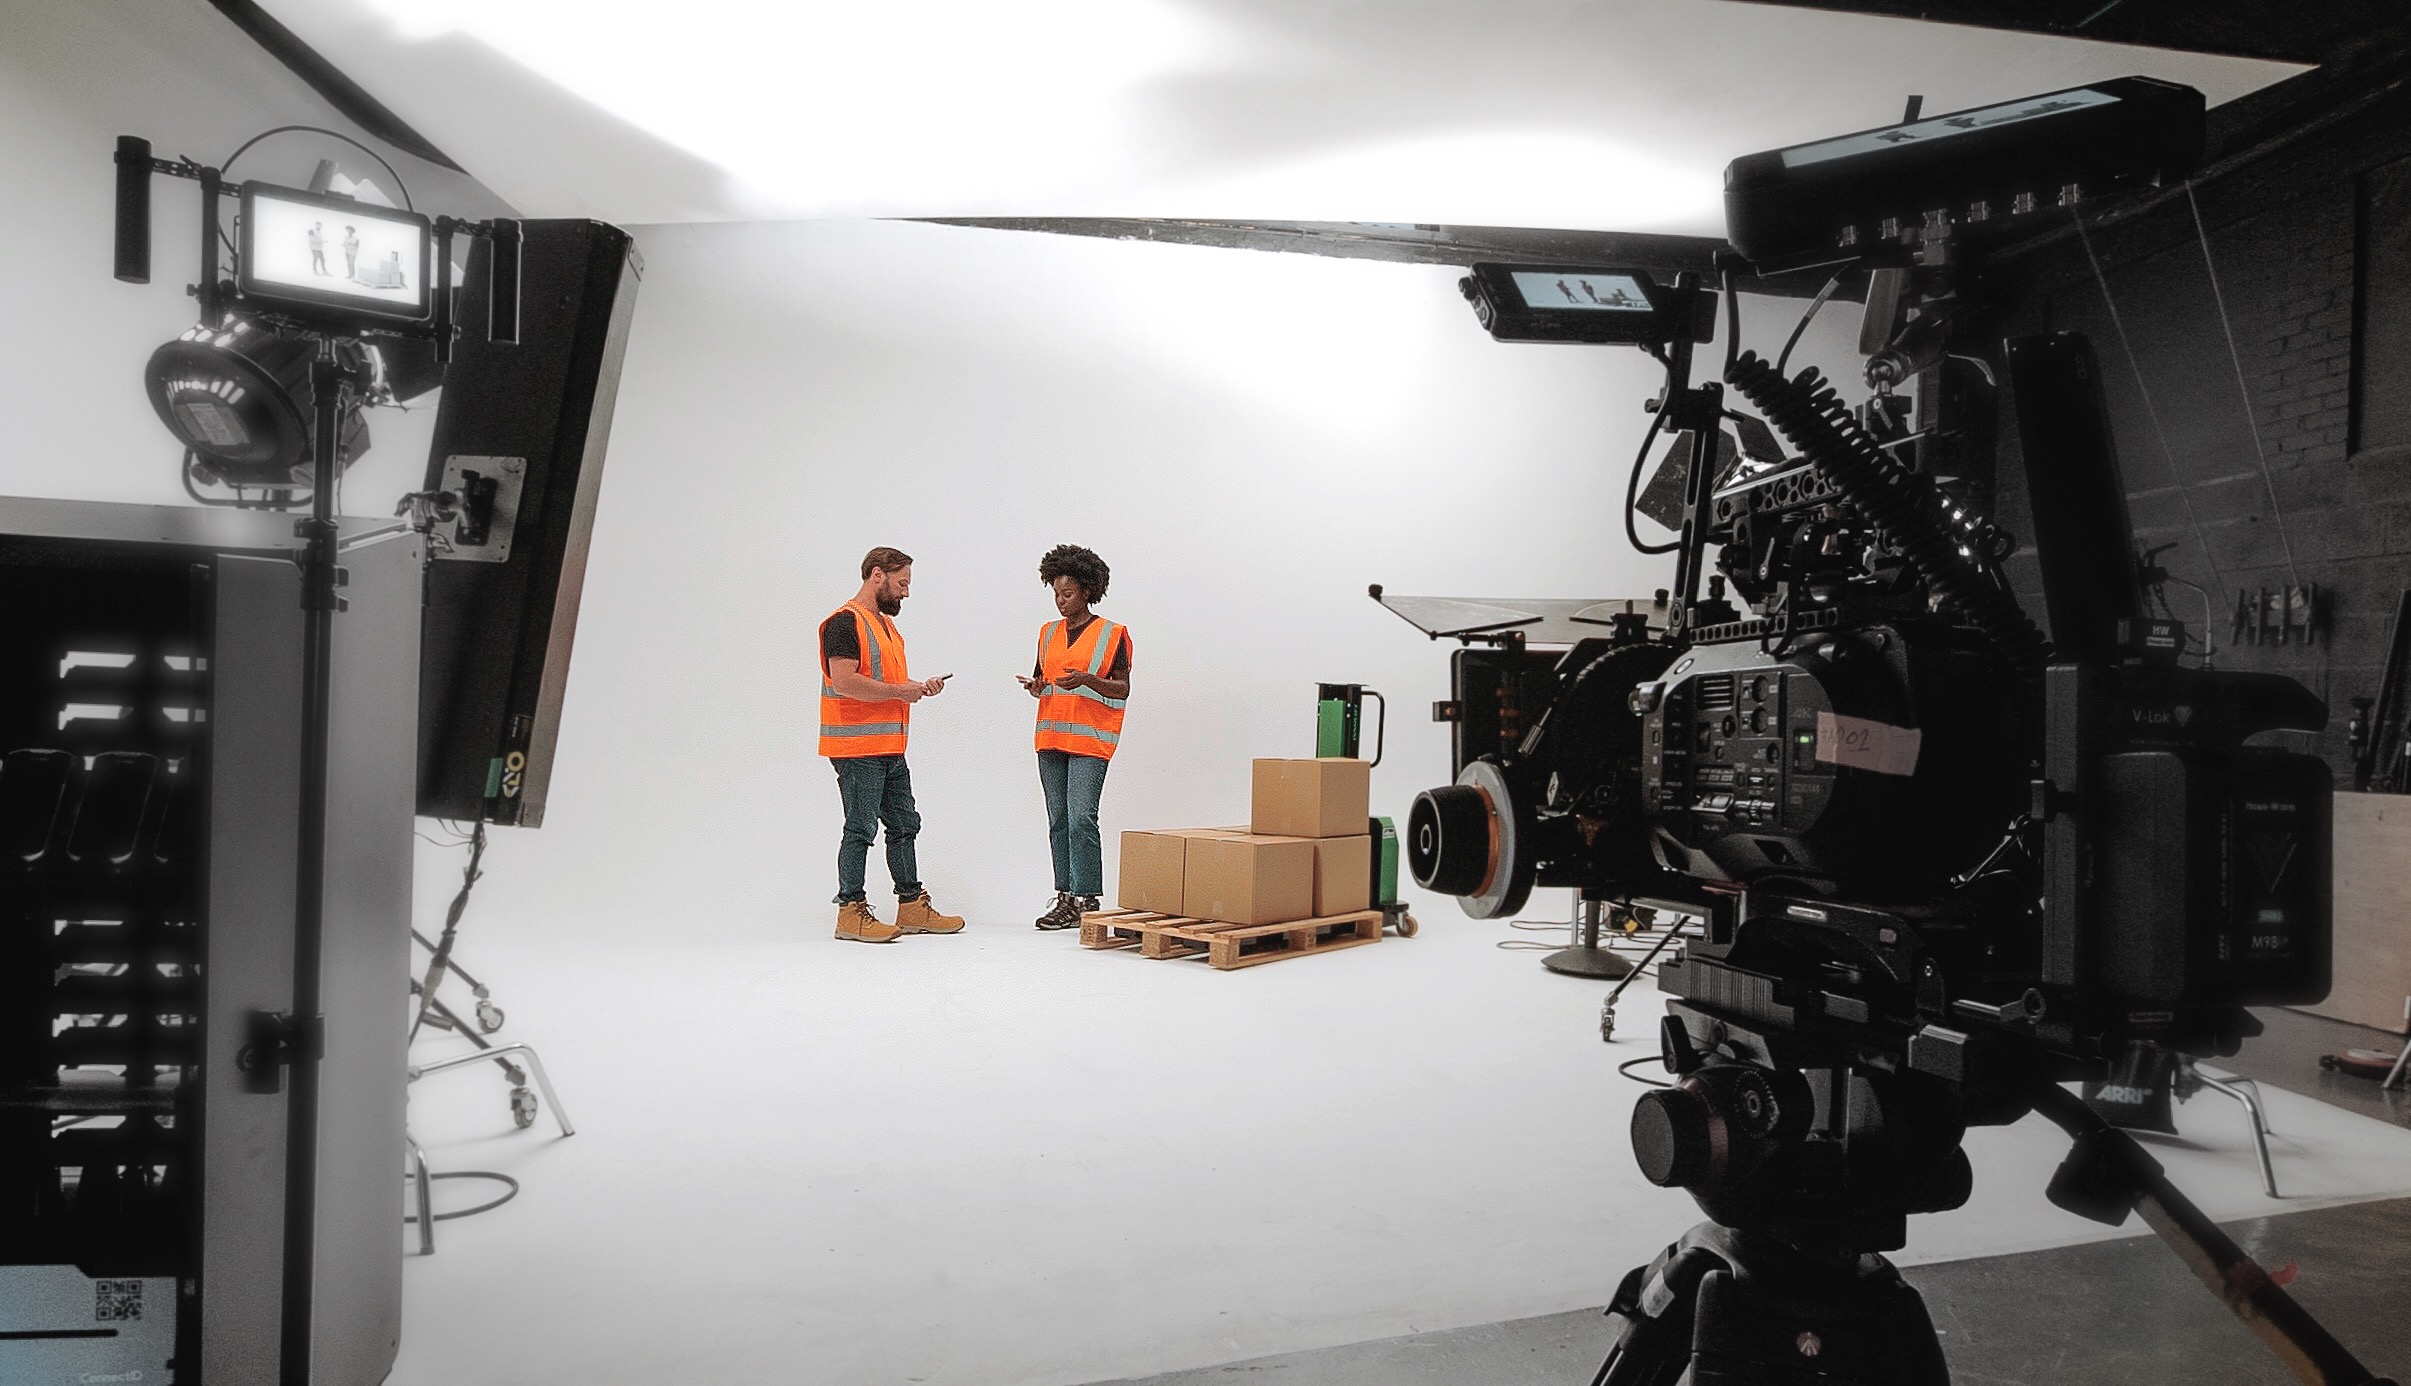 A man and a woman wearing hi-vis jackets on a film set with a camera